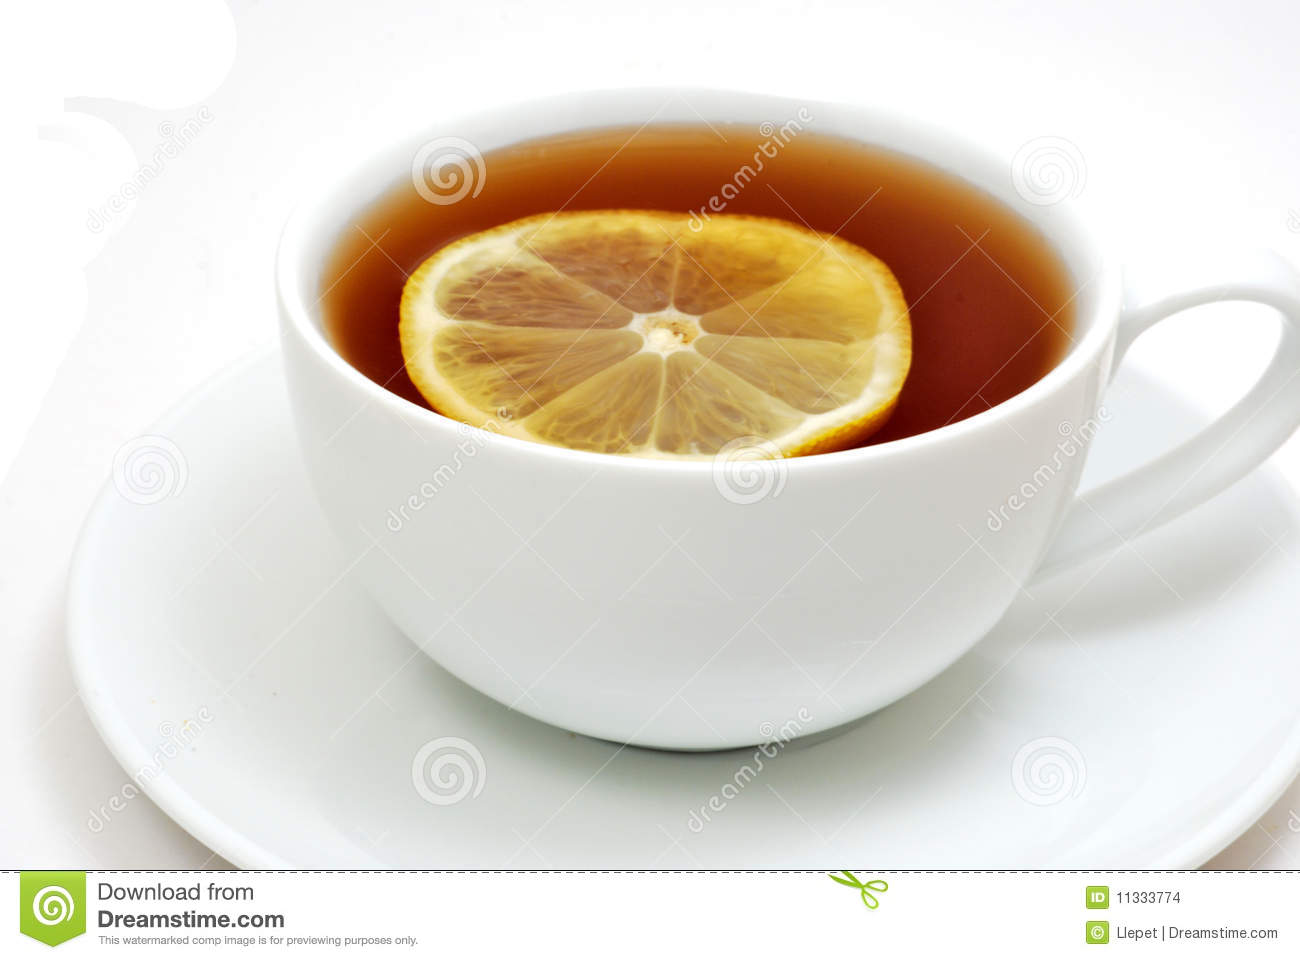 Tea with lemon isolated on white background.